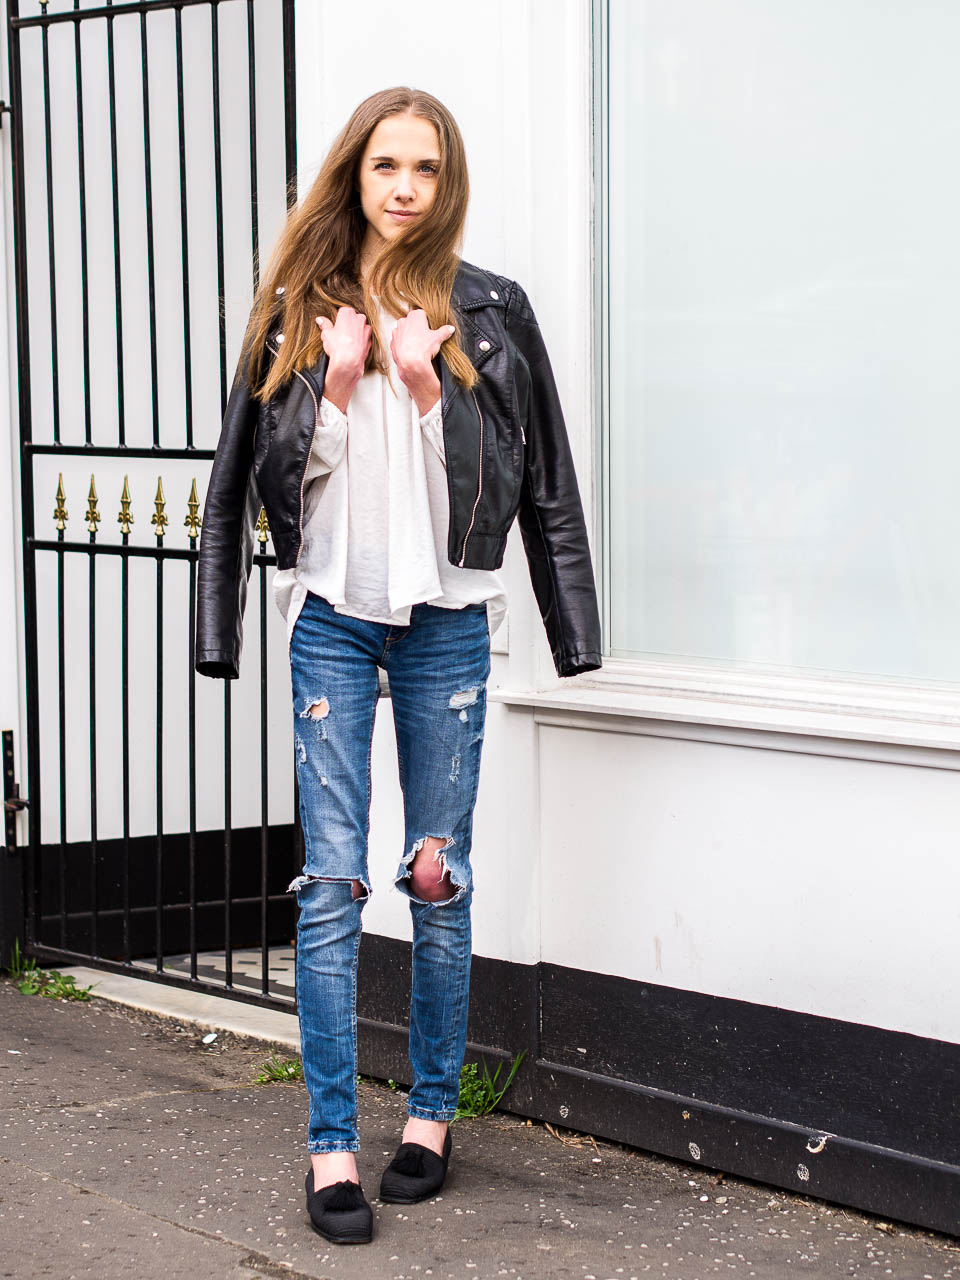 biker-jacket-distressed-jeans-stuart-weitzman-tassel-shoes